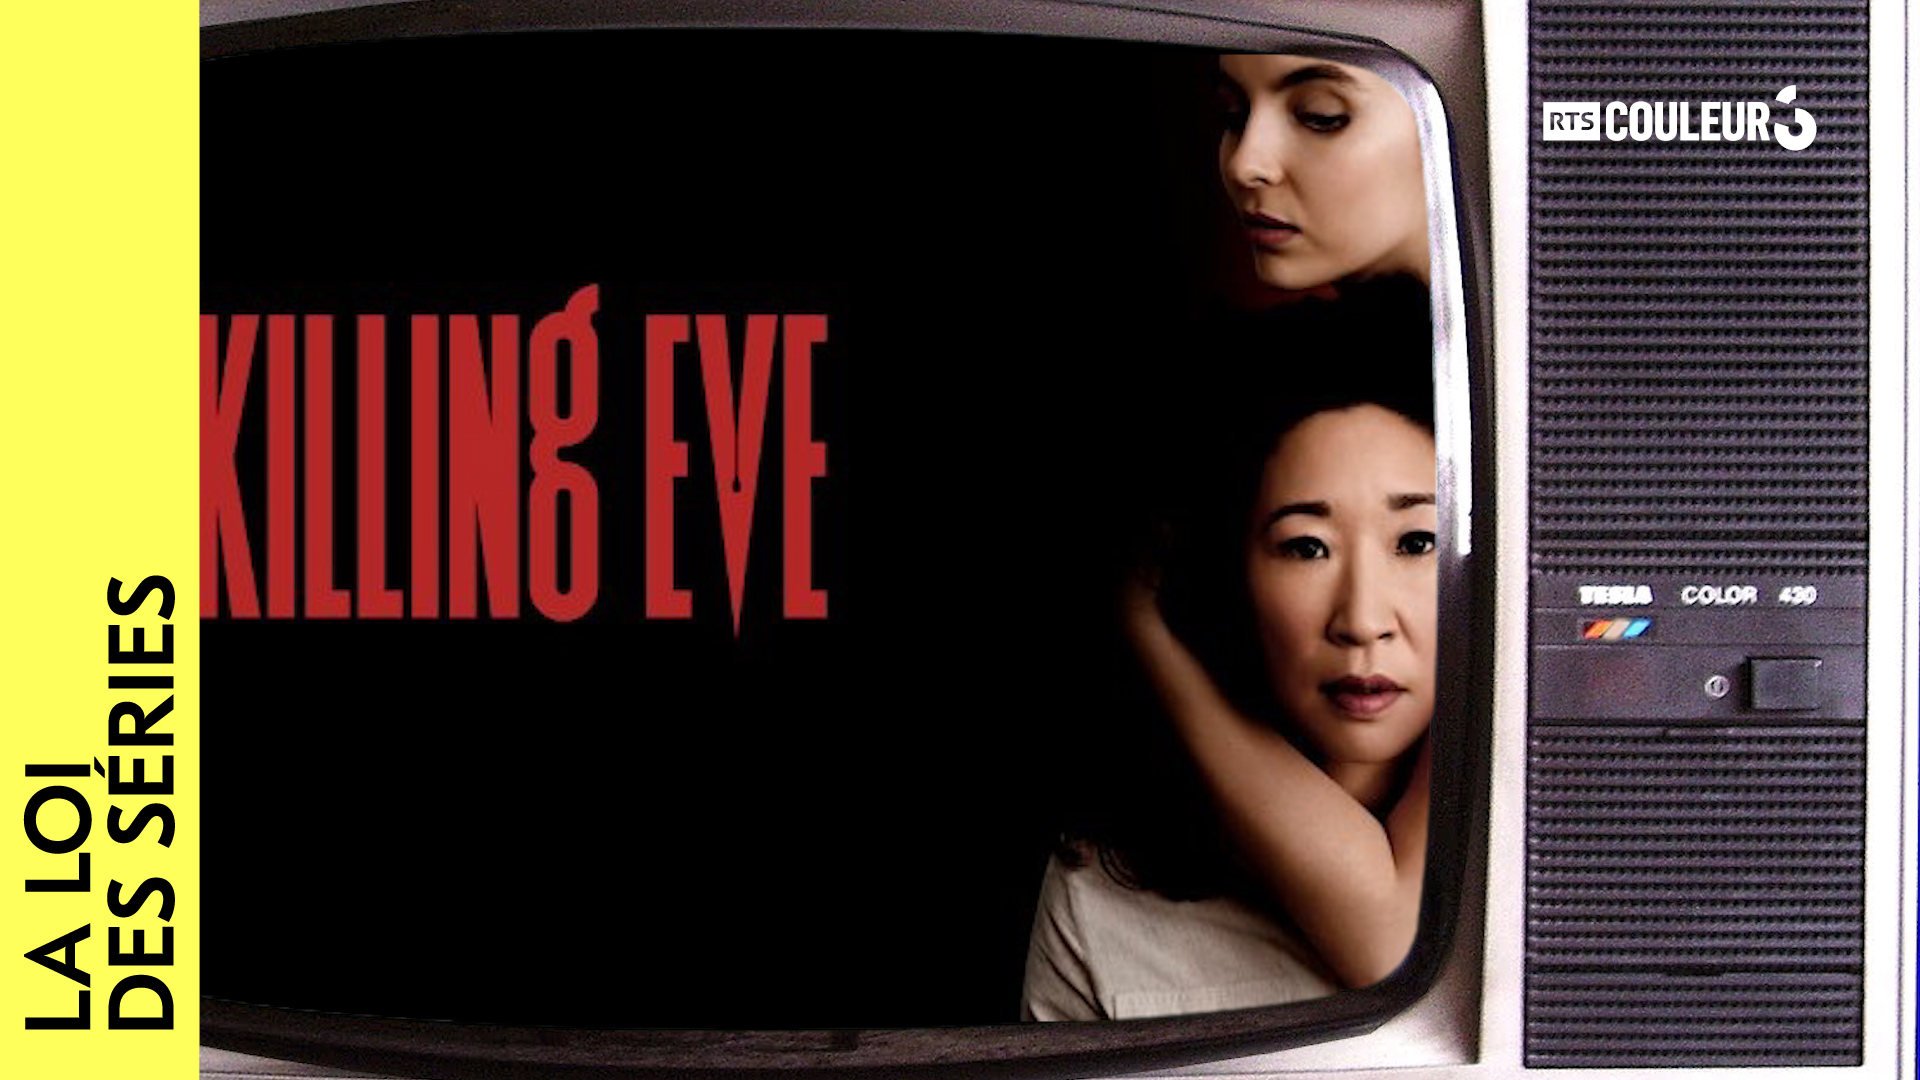 """Killing Eve"", la nouvelle création de Phoebe Waller-Bridge."